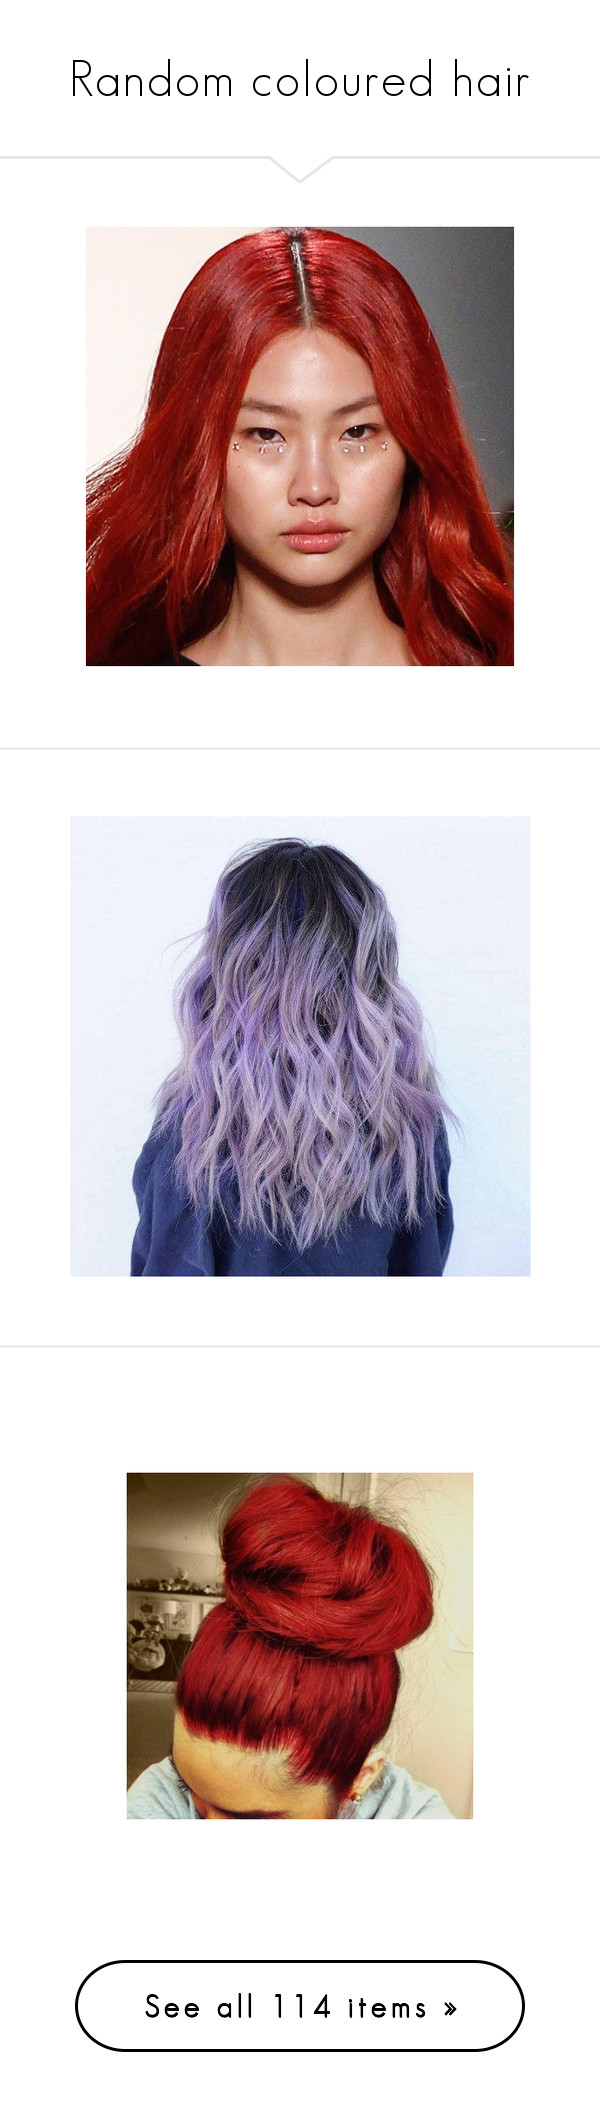 """""""Random coloured hair"""" by noir-wolf ❤ liked on Polyvore featuring beauty products, haircare, hair, bath & beauty, grey, hair care, hair extensions, hairstyles, hair styles and pictures"""